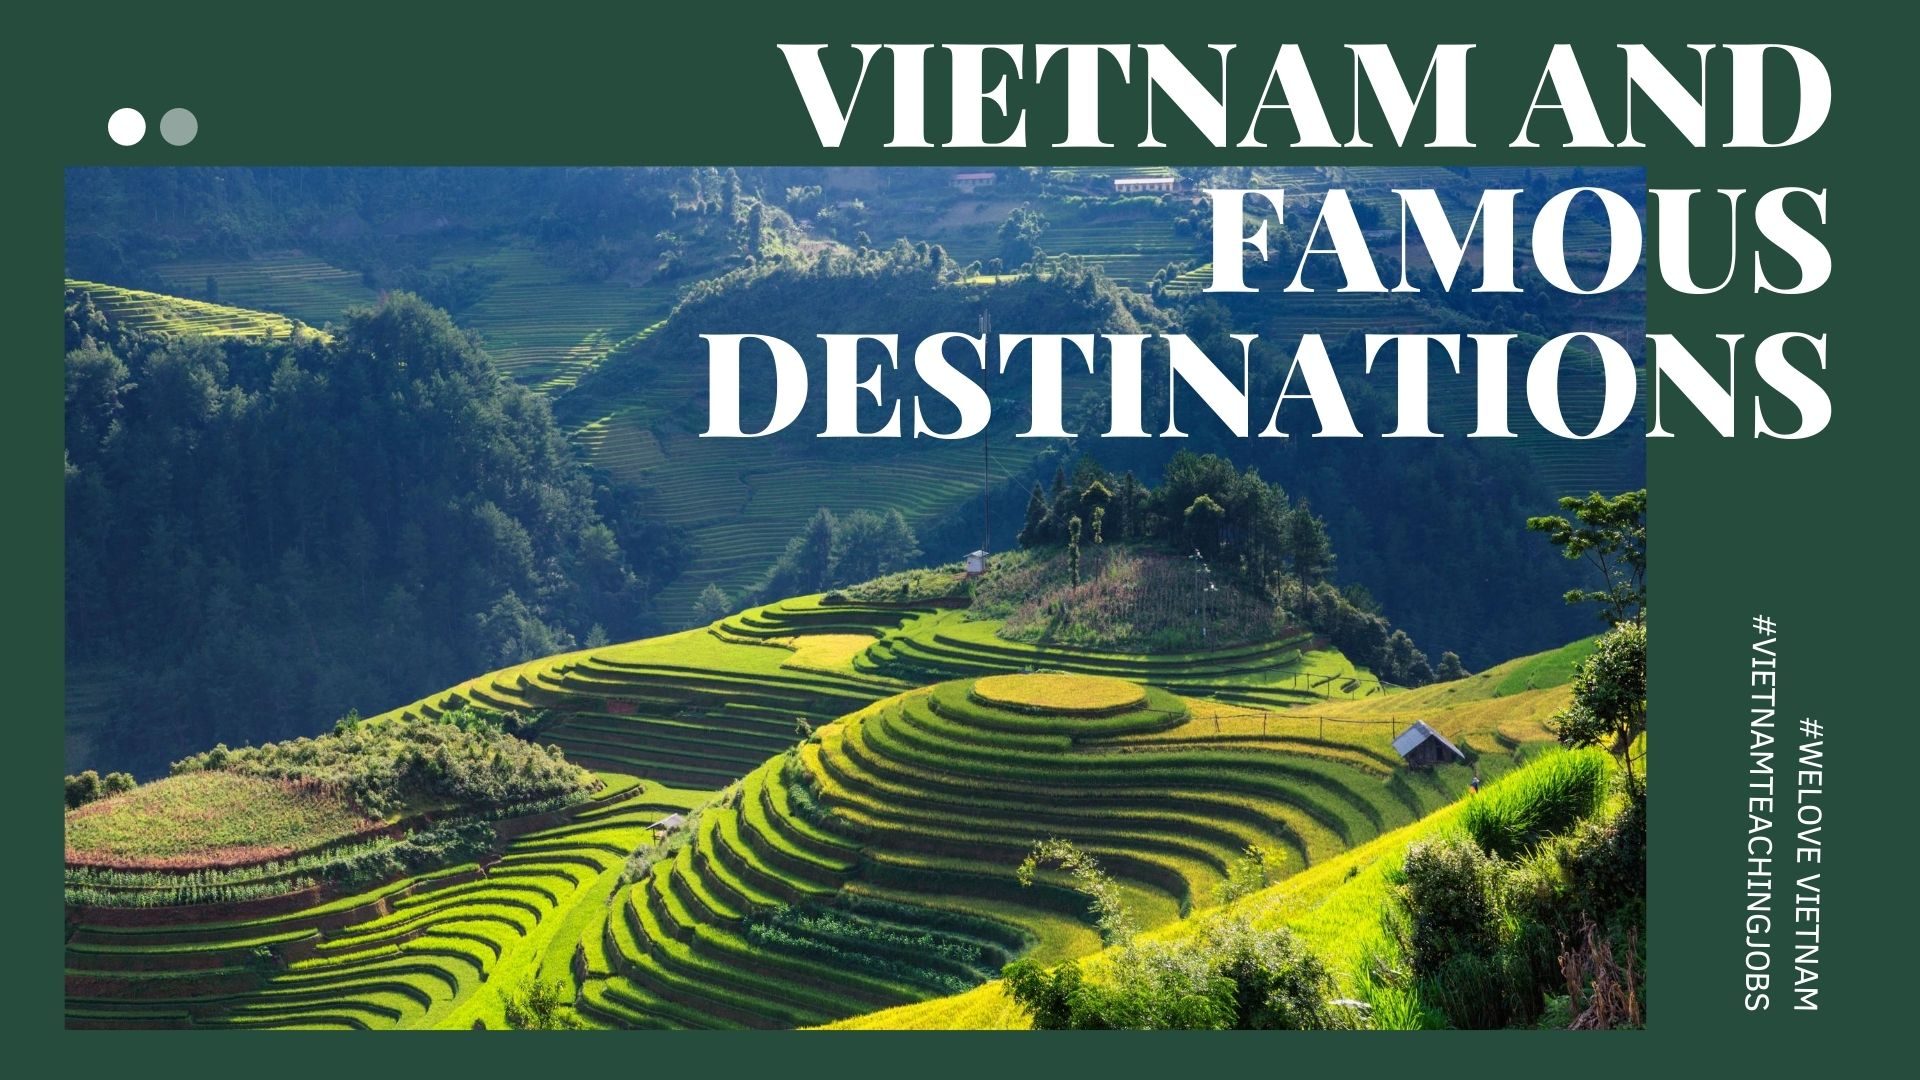 Vietnam and Famous Destinations